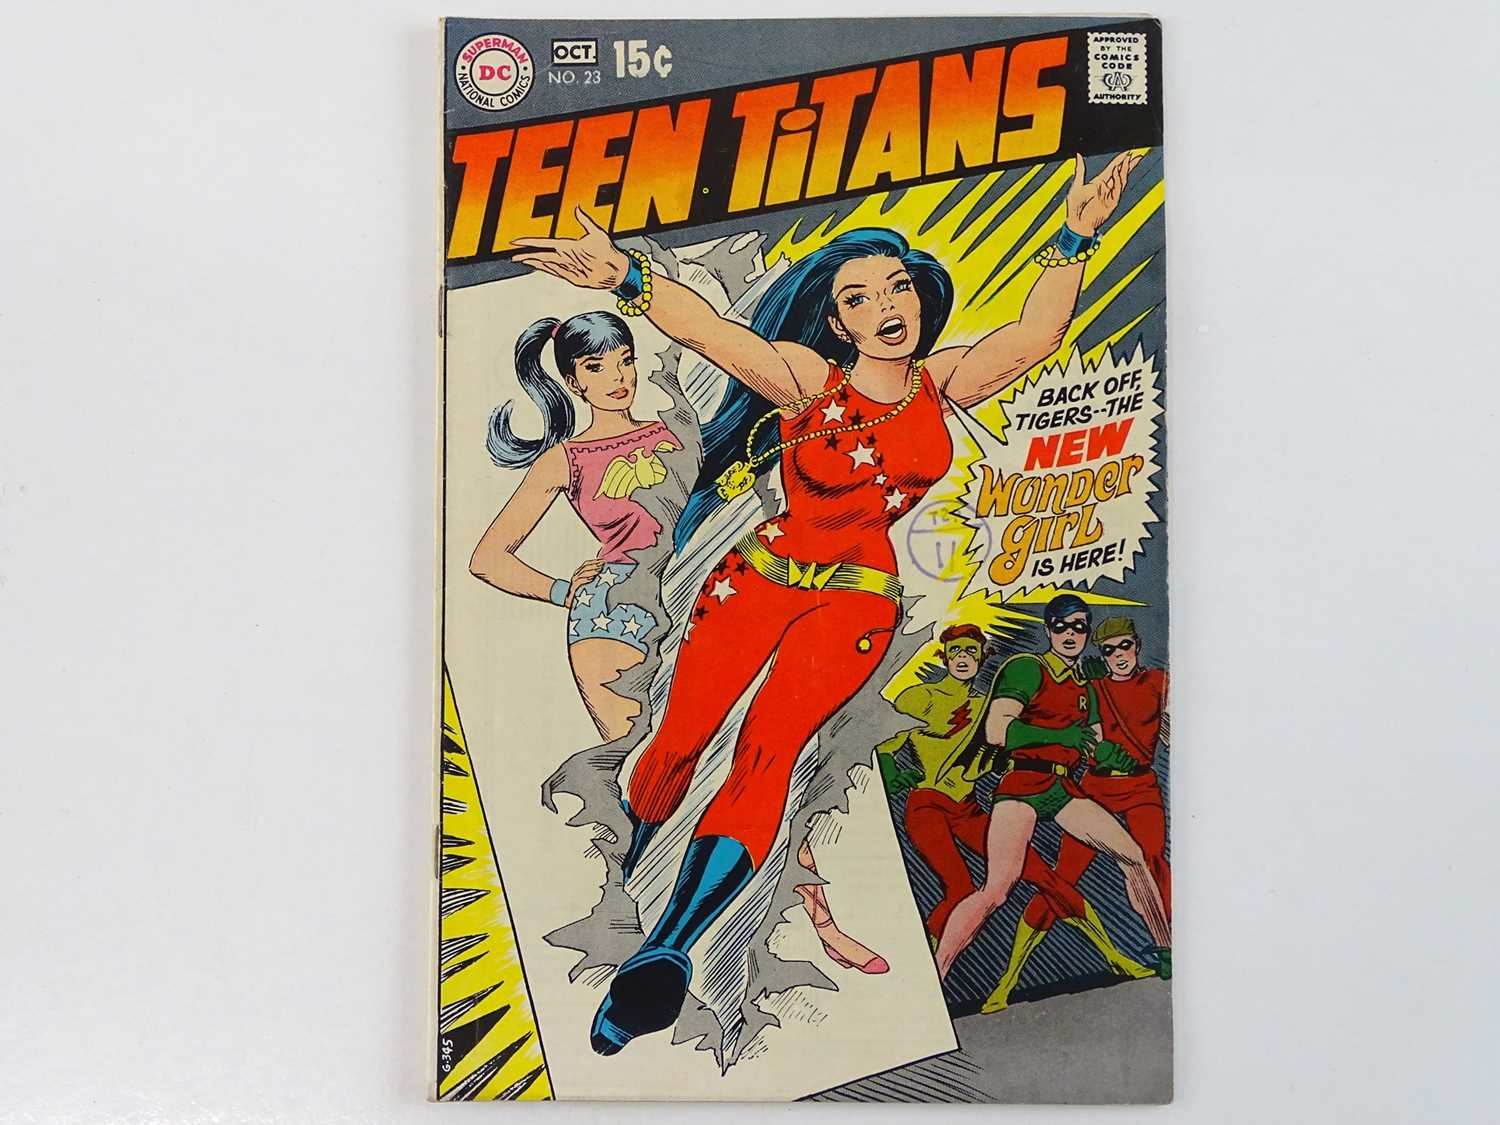 TEEN TITANS #23 - (1969 - DC - UK Cover Price) - Classic DC Cover - New costume for Wonder Girl